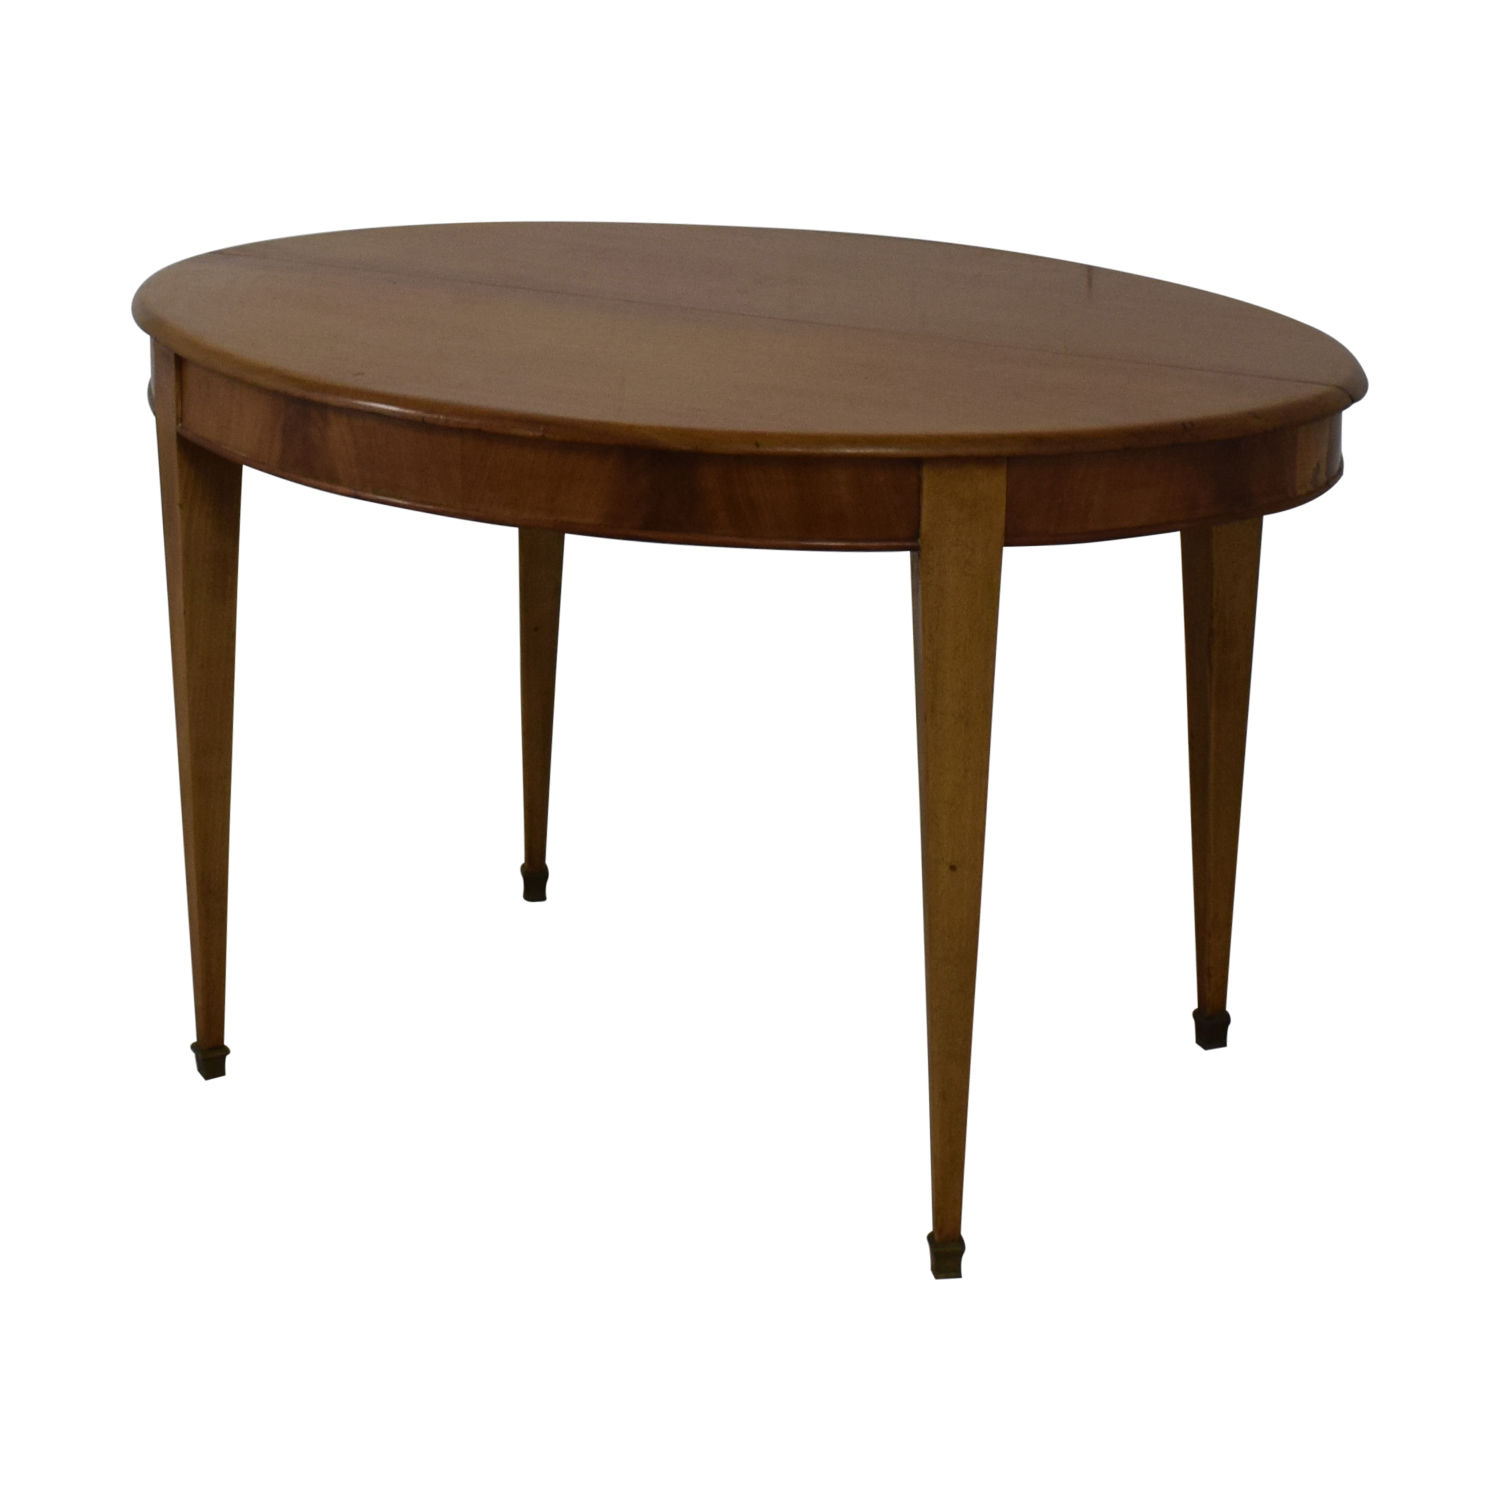 Antique Round Dining Table coupon